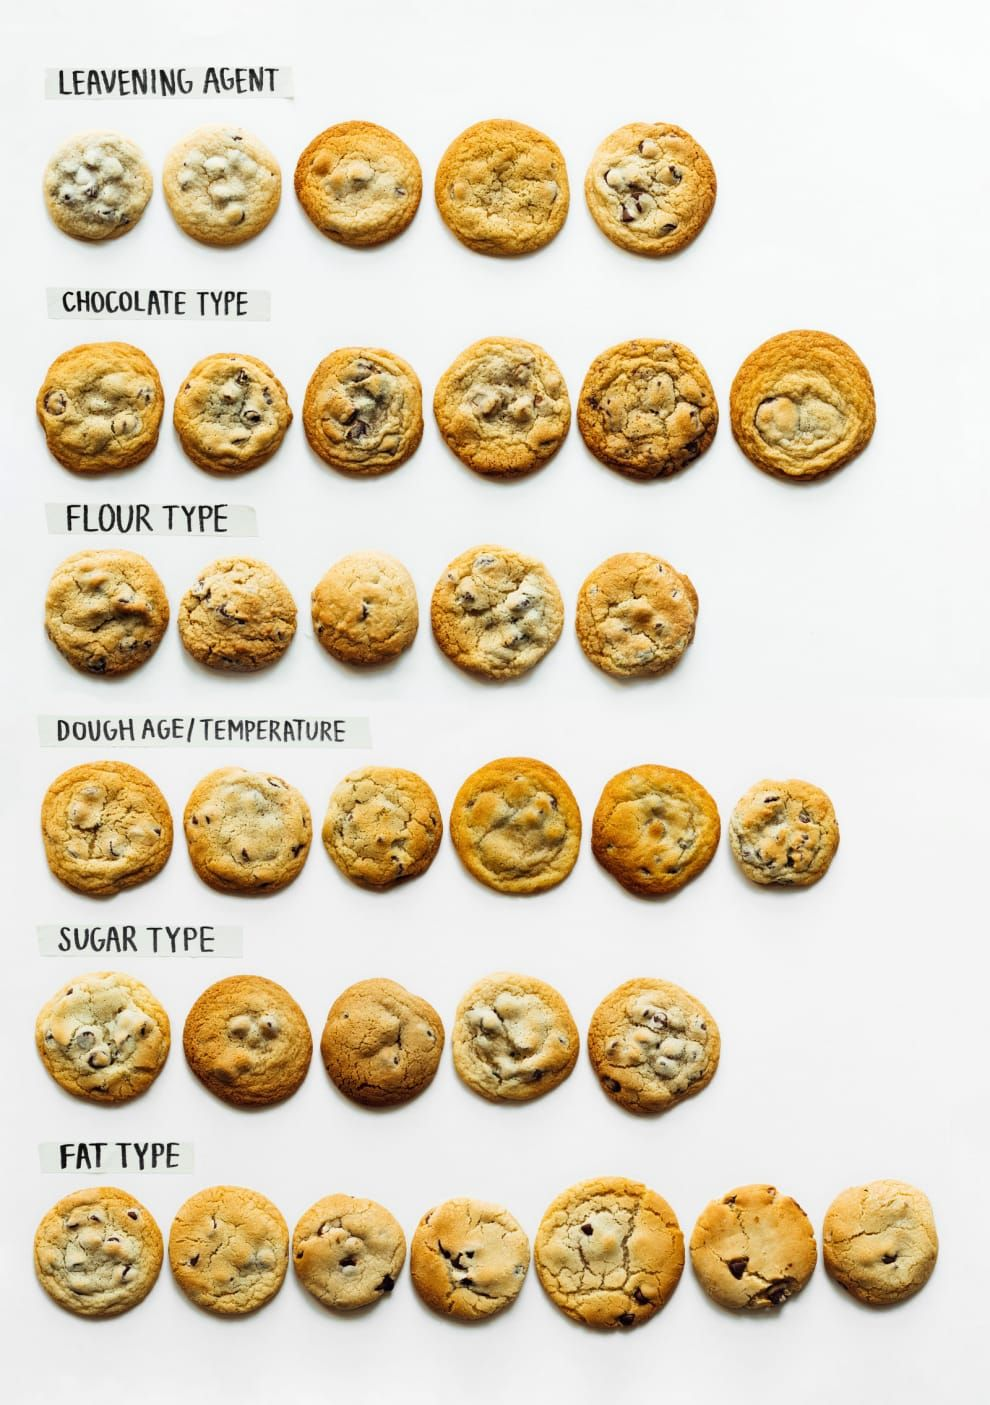 BuzzFeed's Guide To Making The Ultimate Chocolate Chip Cookies